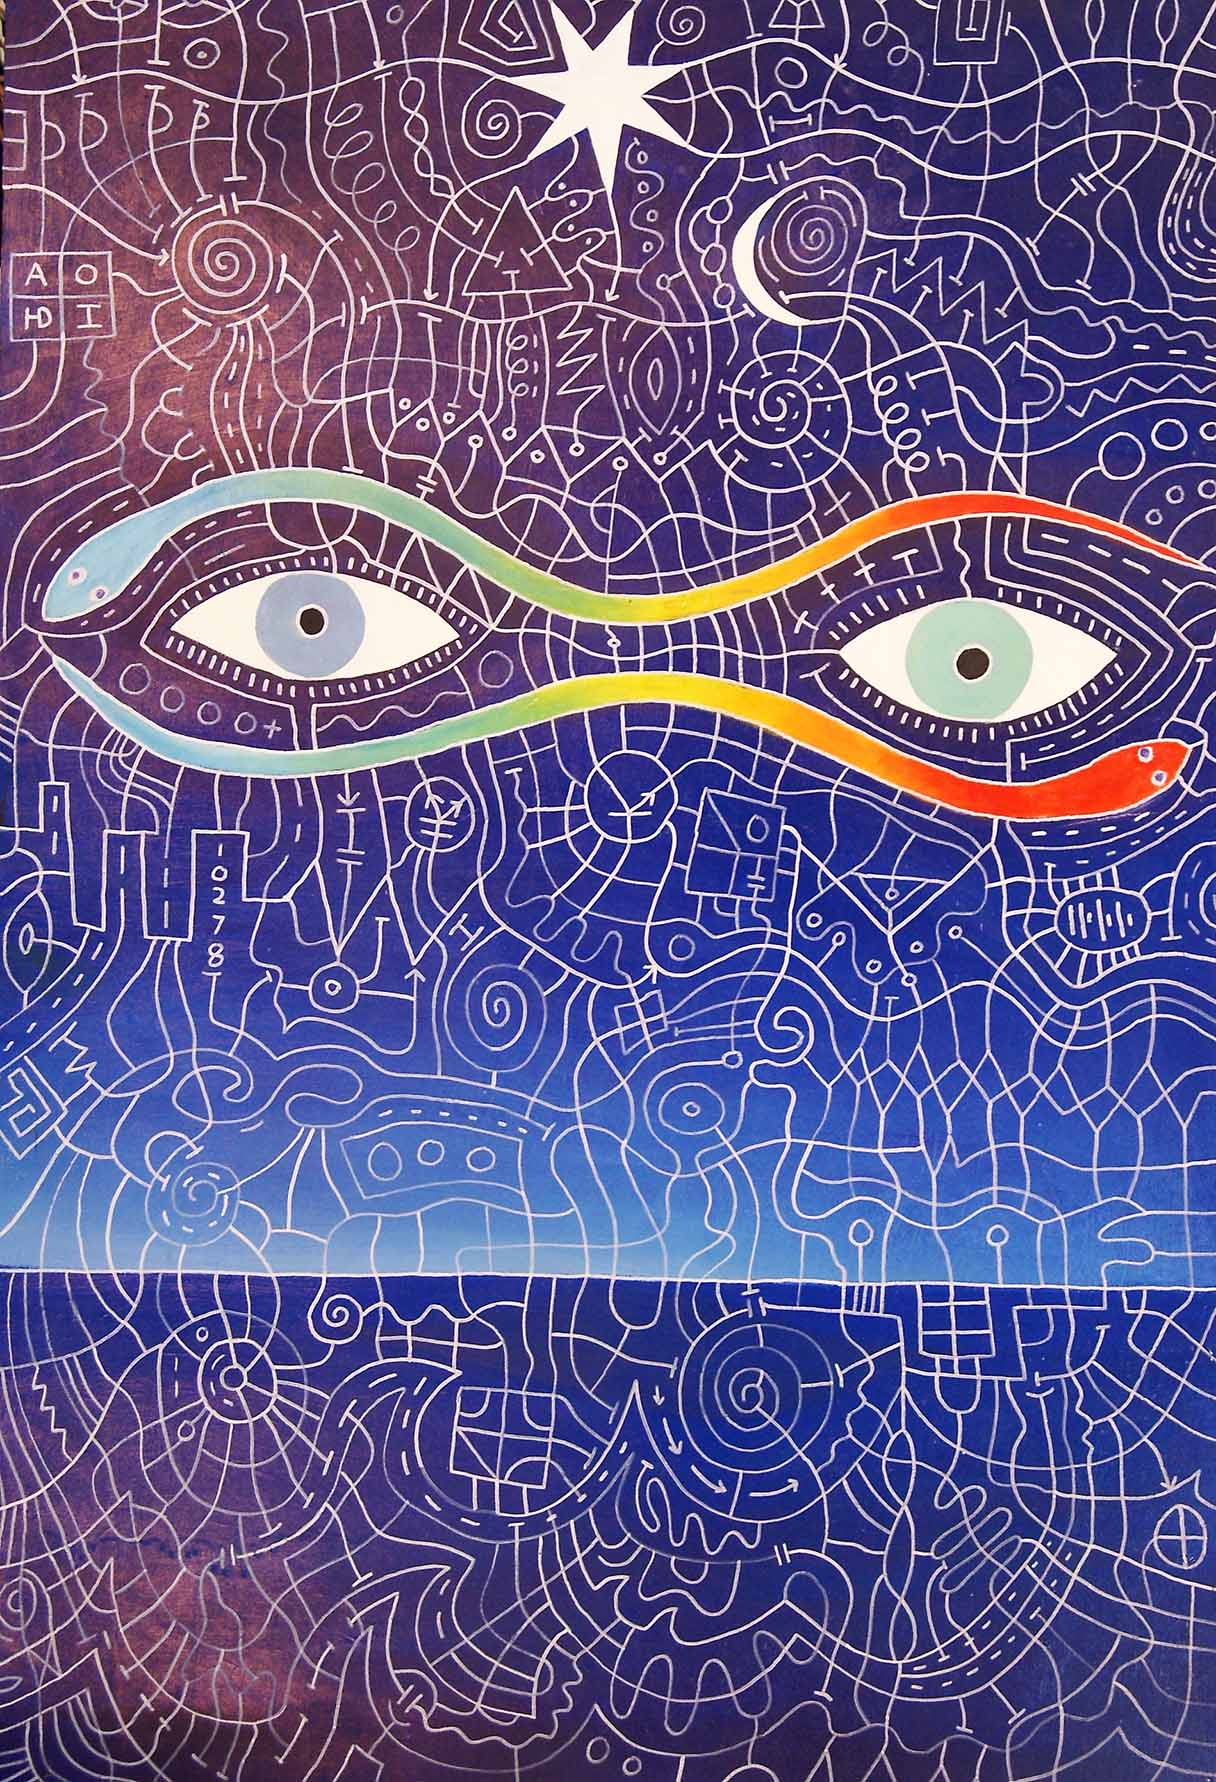 Sky serpents with eyes 2008